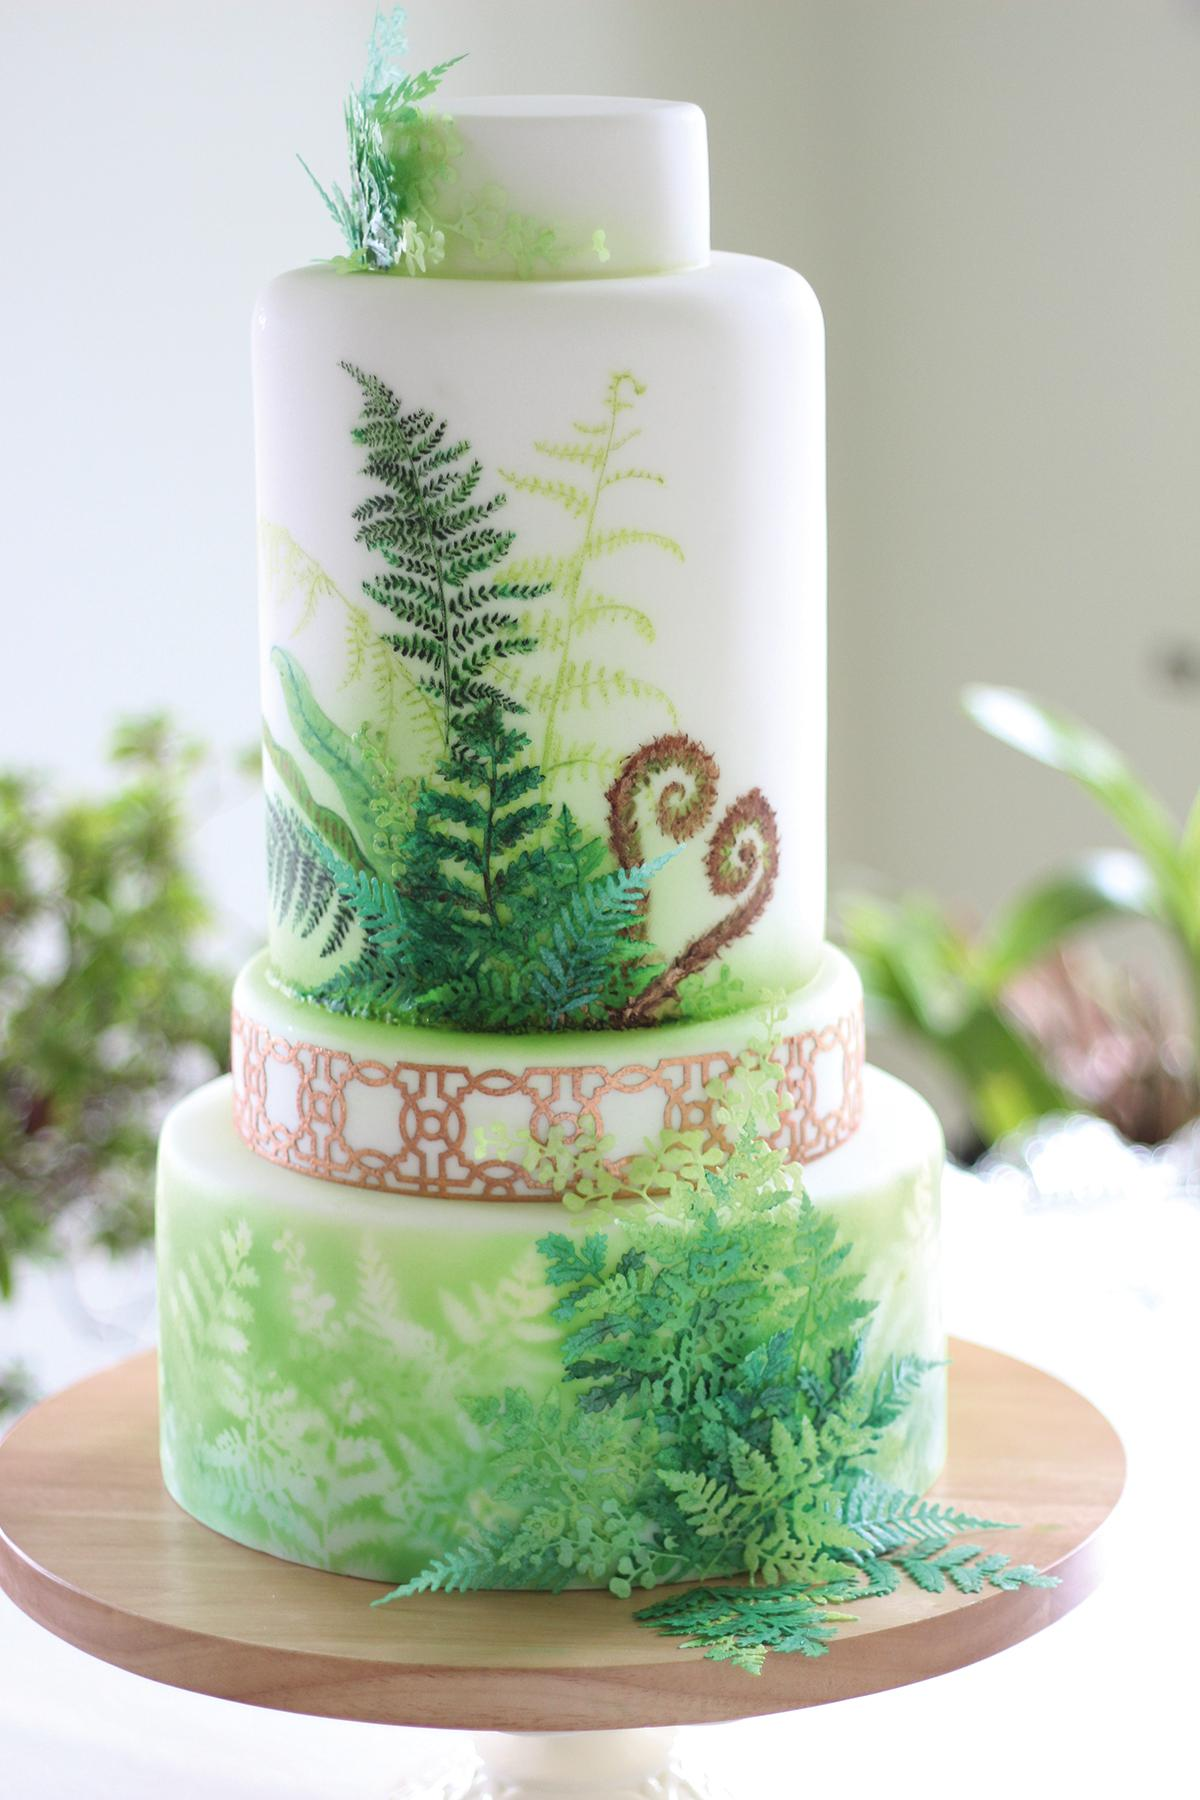 Floral wedding cakes - Lindy's cakes